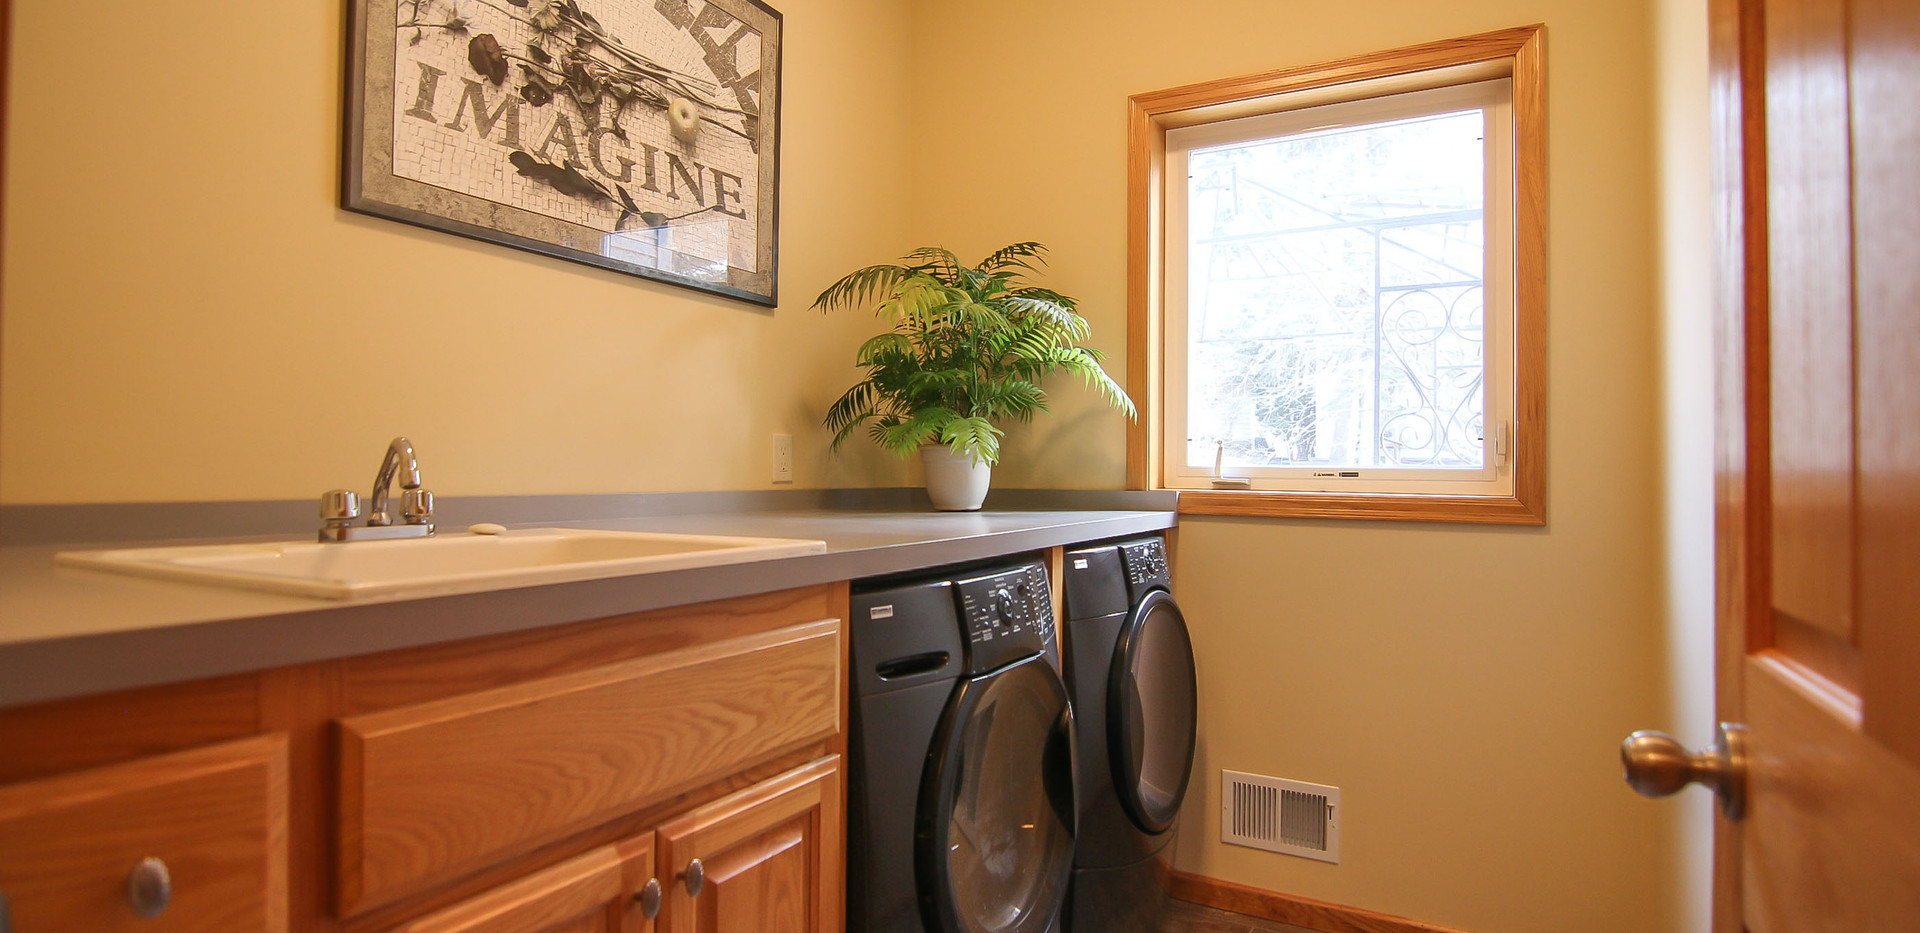 Laundry Rooms After